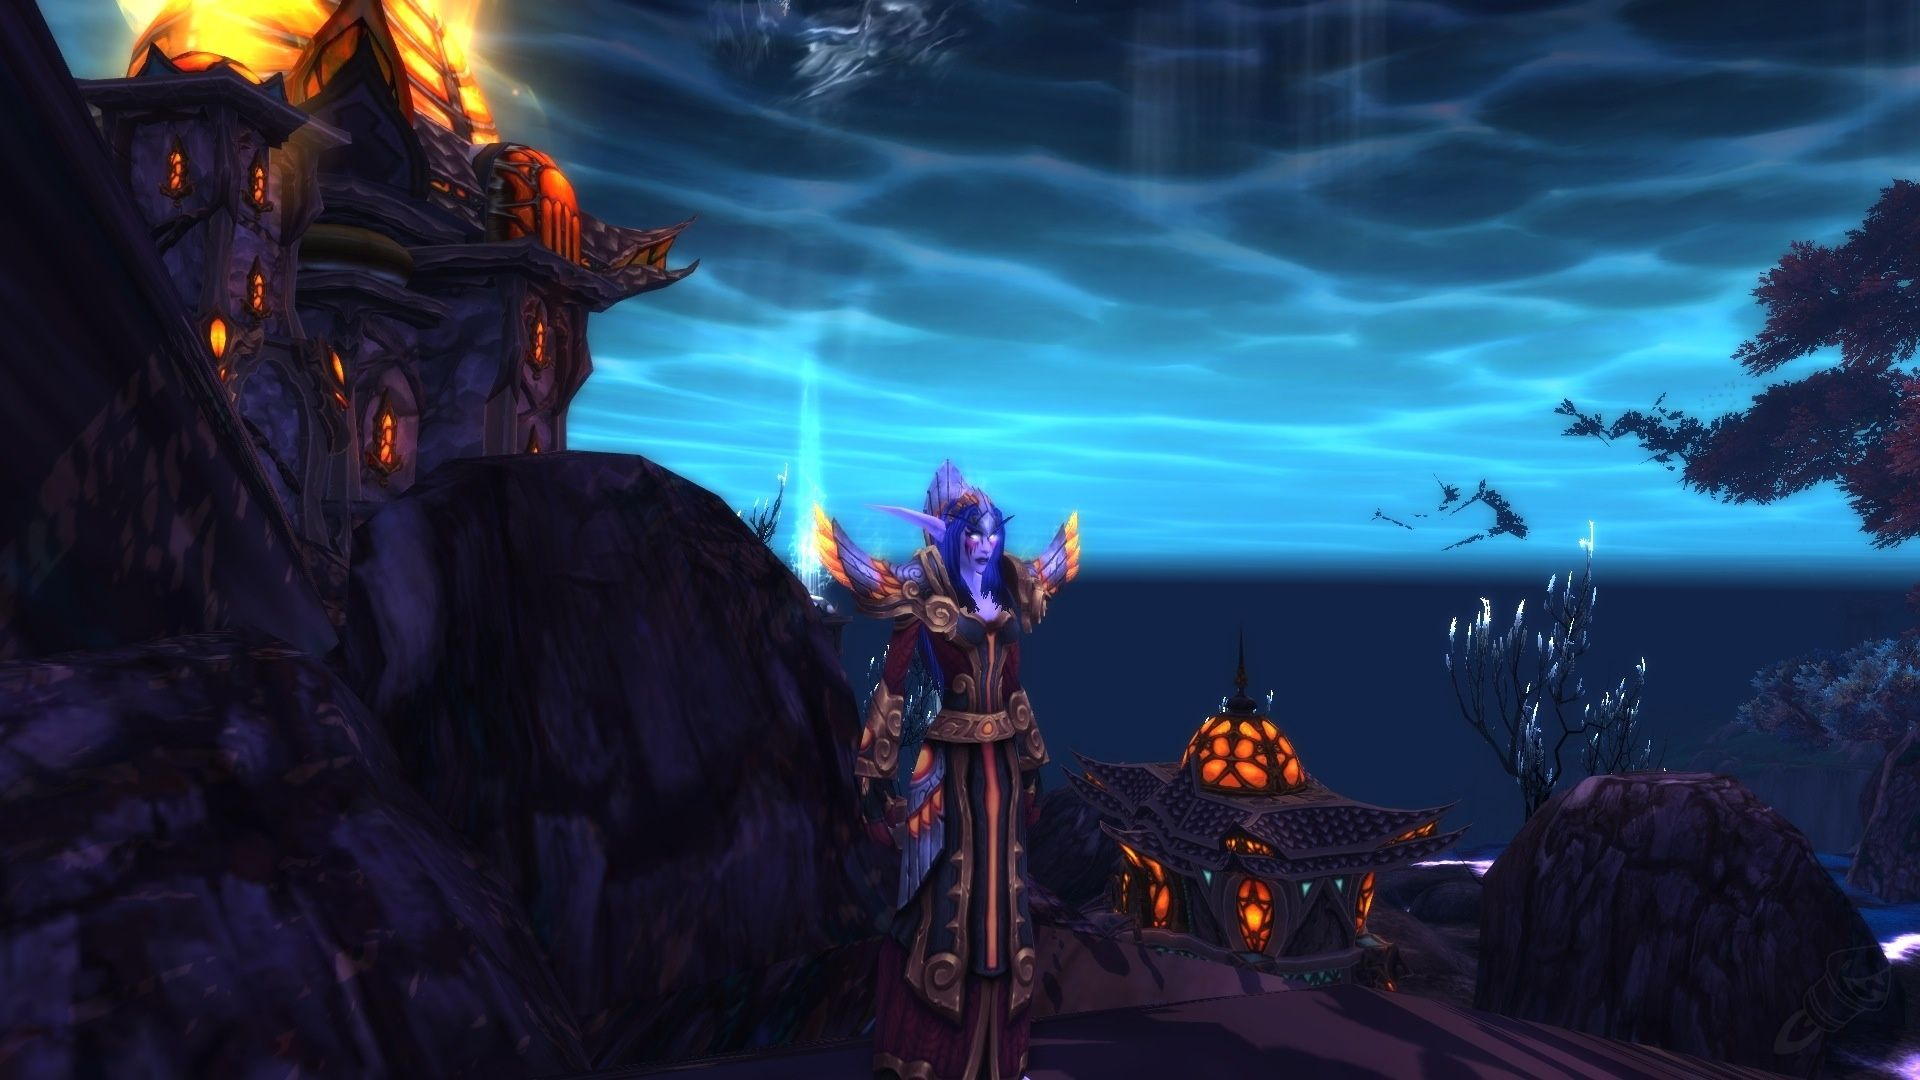 Patch 5.4 Gear Guide: Siege of Orgrimmar, Timeless Isle, and Crafted Items